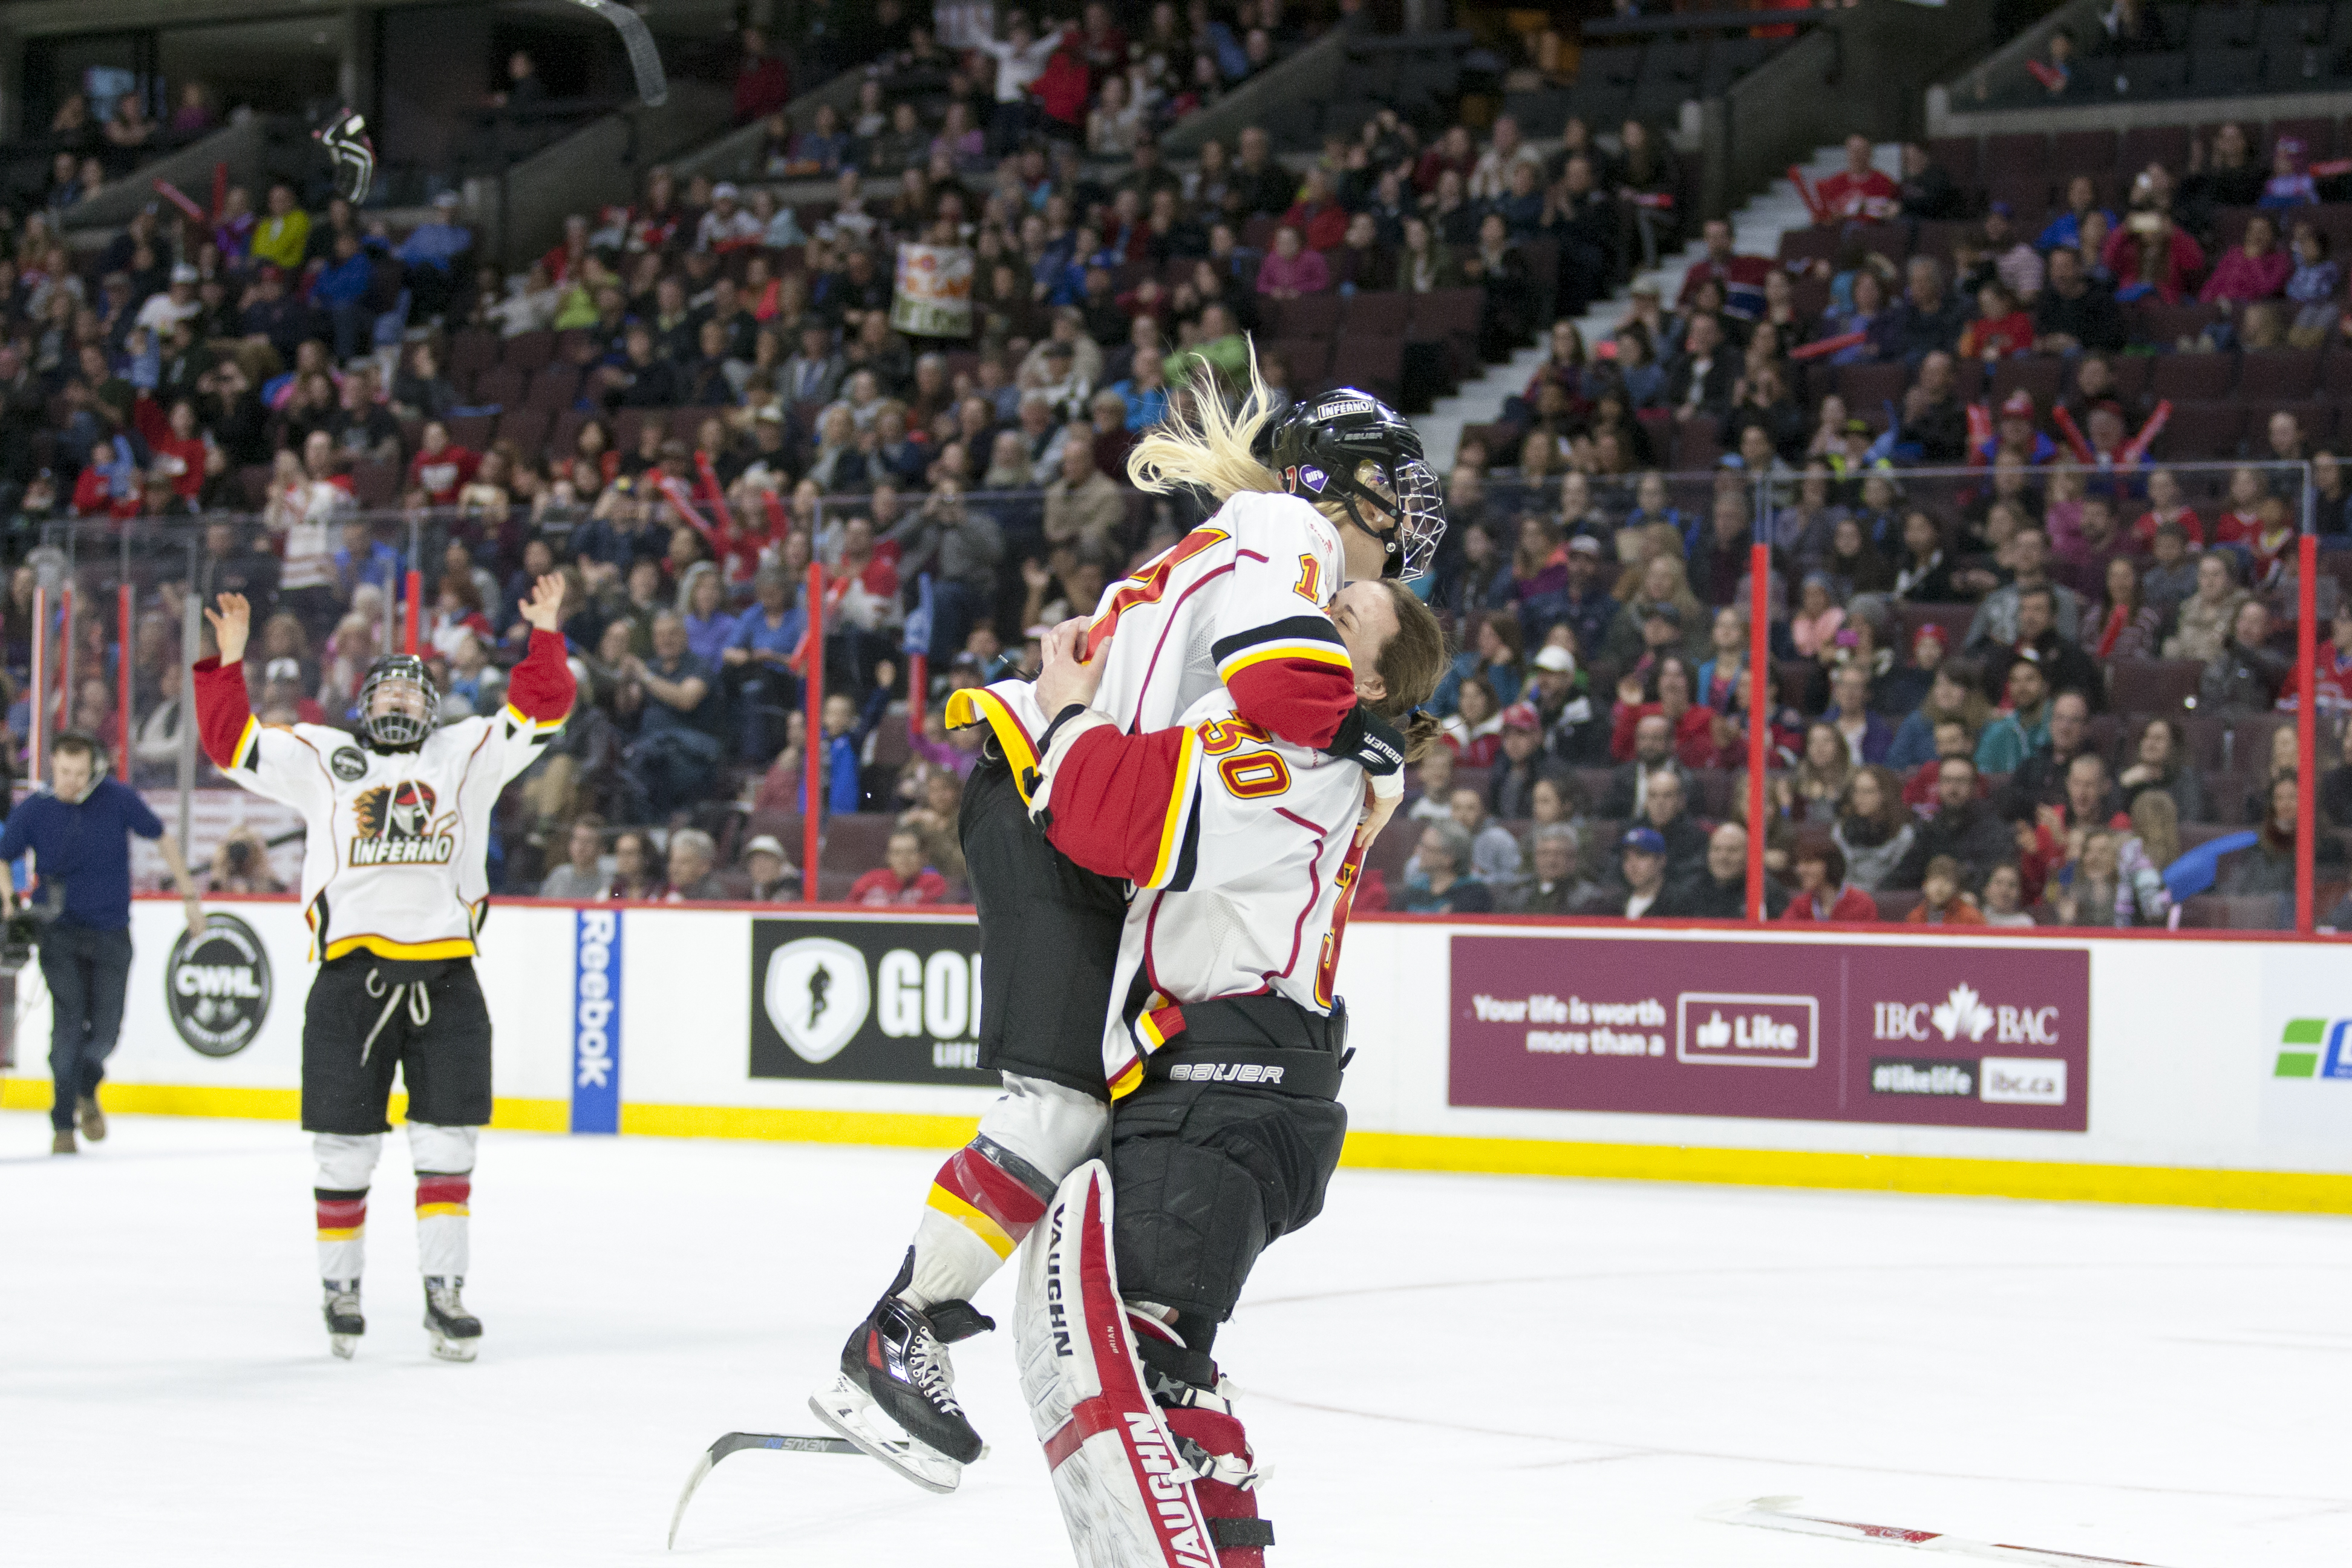 Bailey Bram and Delayne Brian celebrate after winning the first Clarkson Cup in the Calgary Inferno's five-year history. Brian made 38 saves and earned both First Star of the Game and MVP of the series for her performance in net.